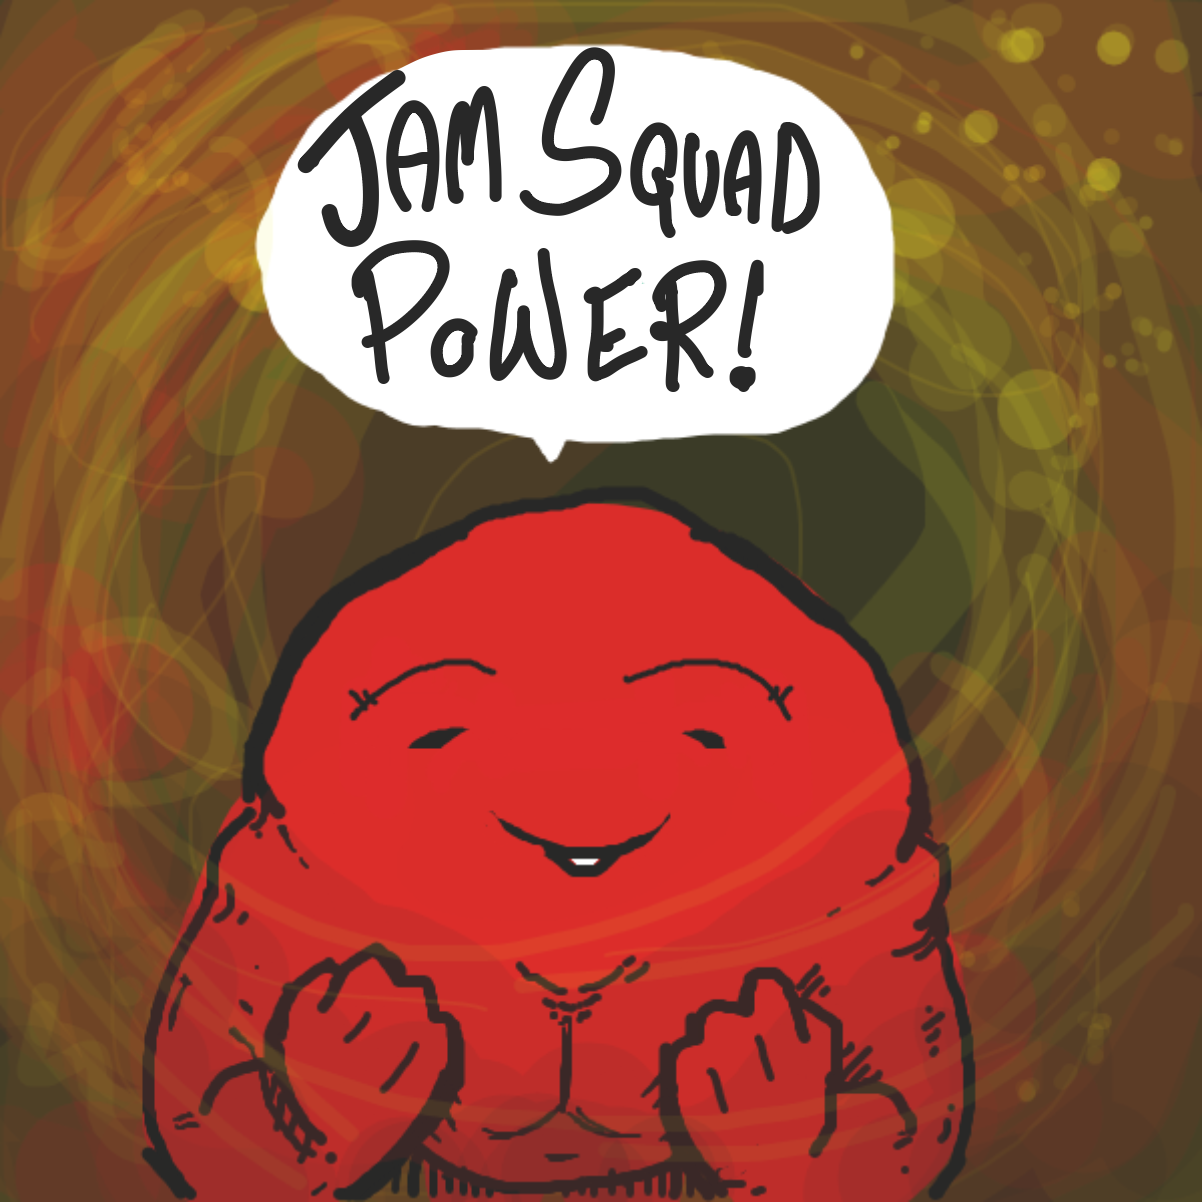 Redrawing on top of an old panel as a test :) - Online Drawing Game Comic Strip Panel by jamdaddy